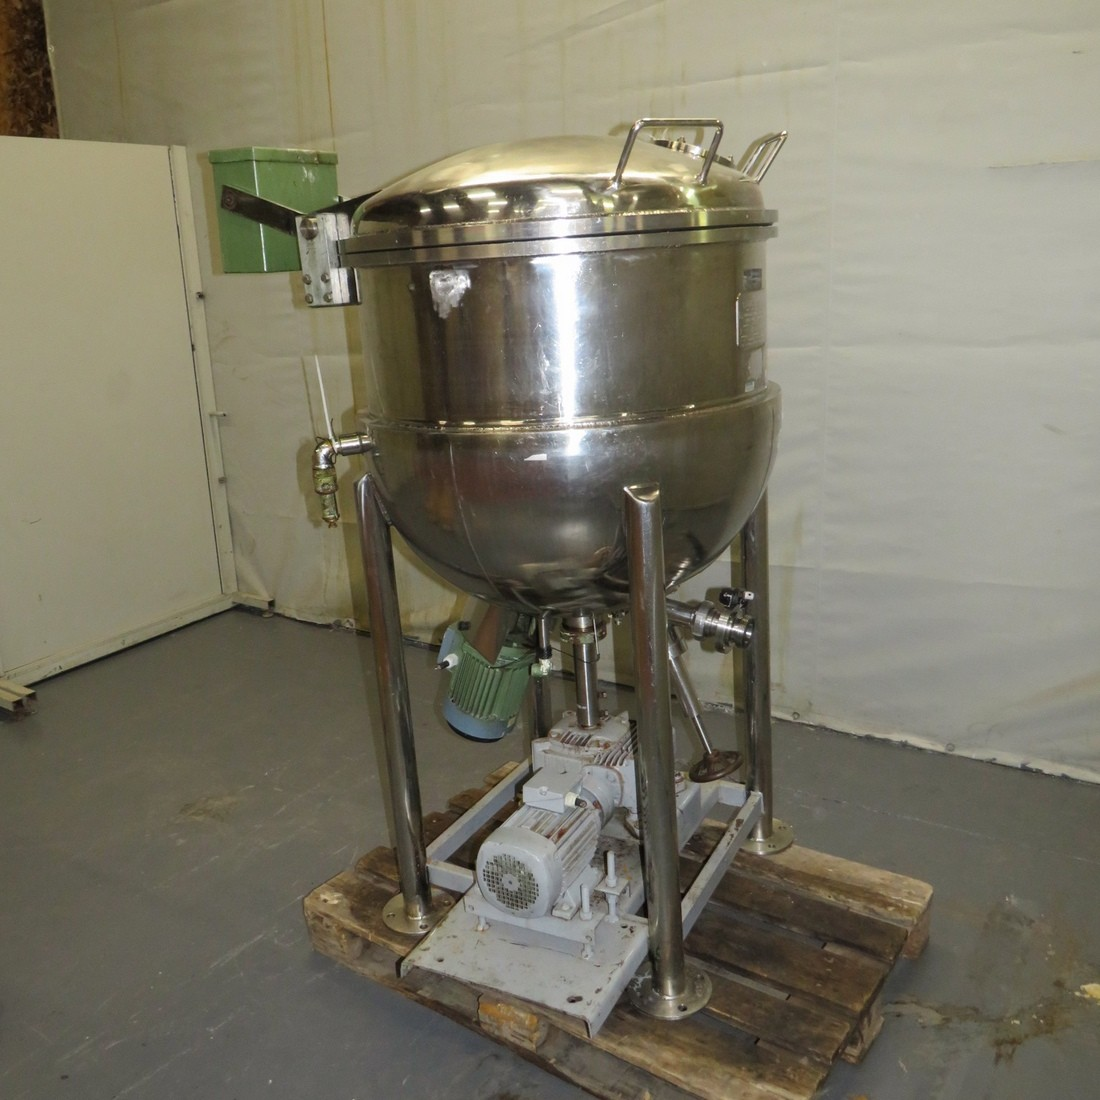 R6ME6386 GIUSTI Stainless steel Mixer with double jacket - 250 Liters - Hp3